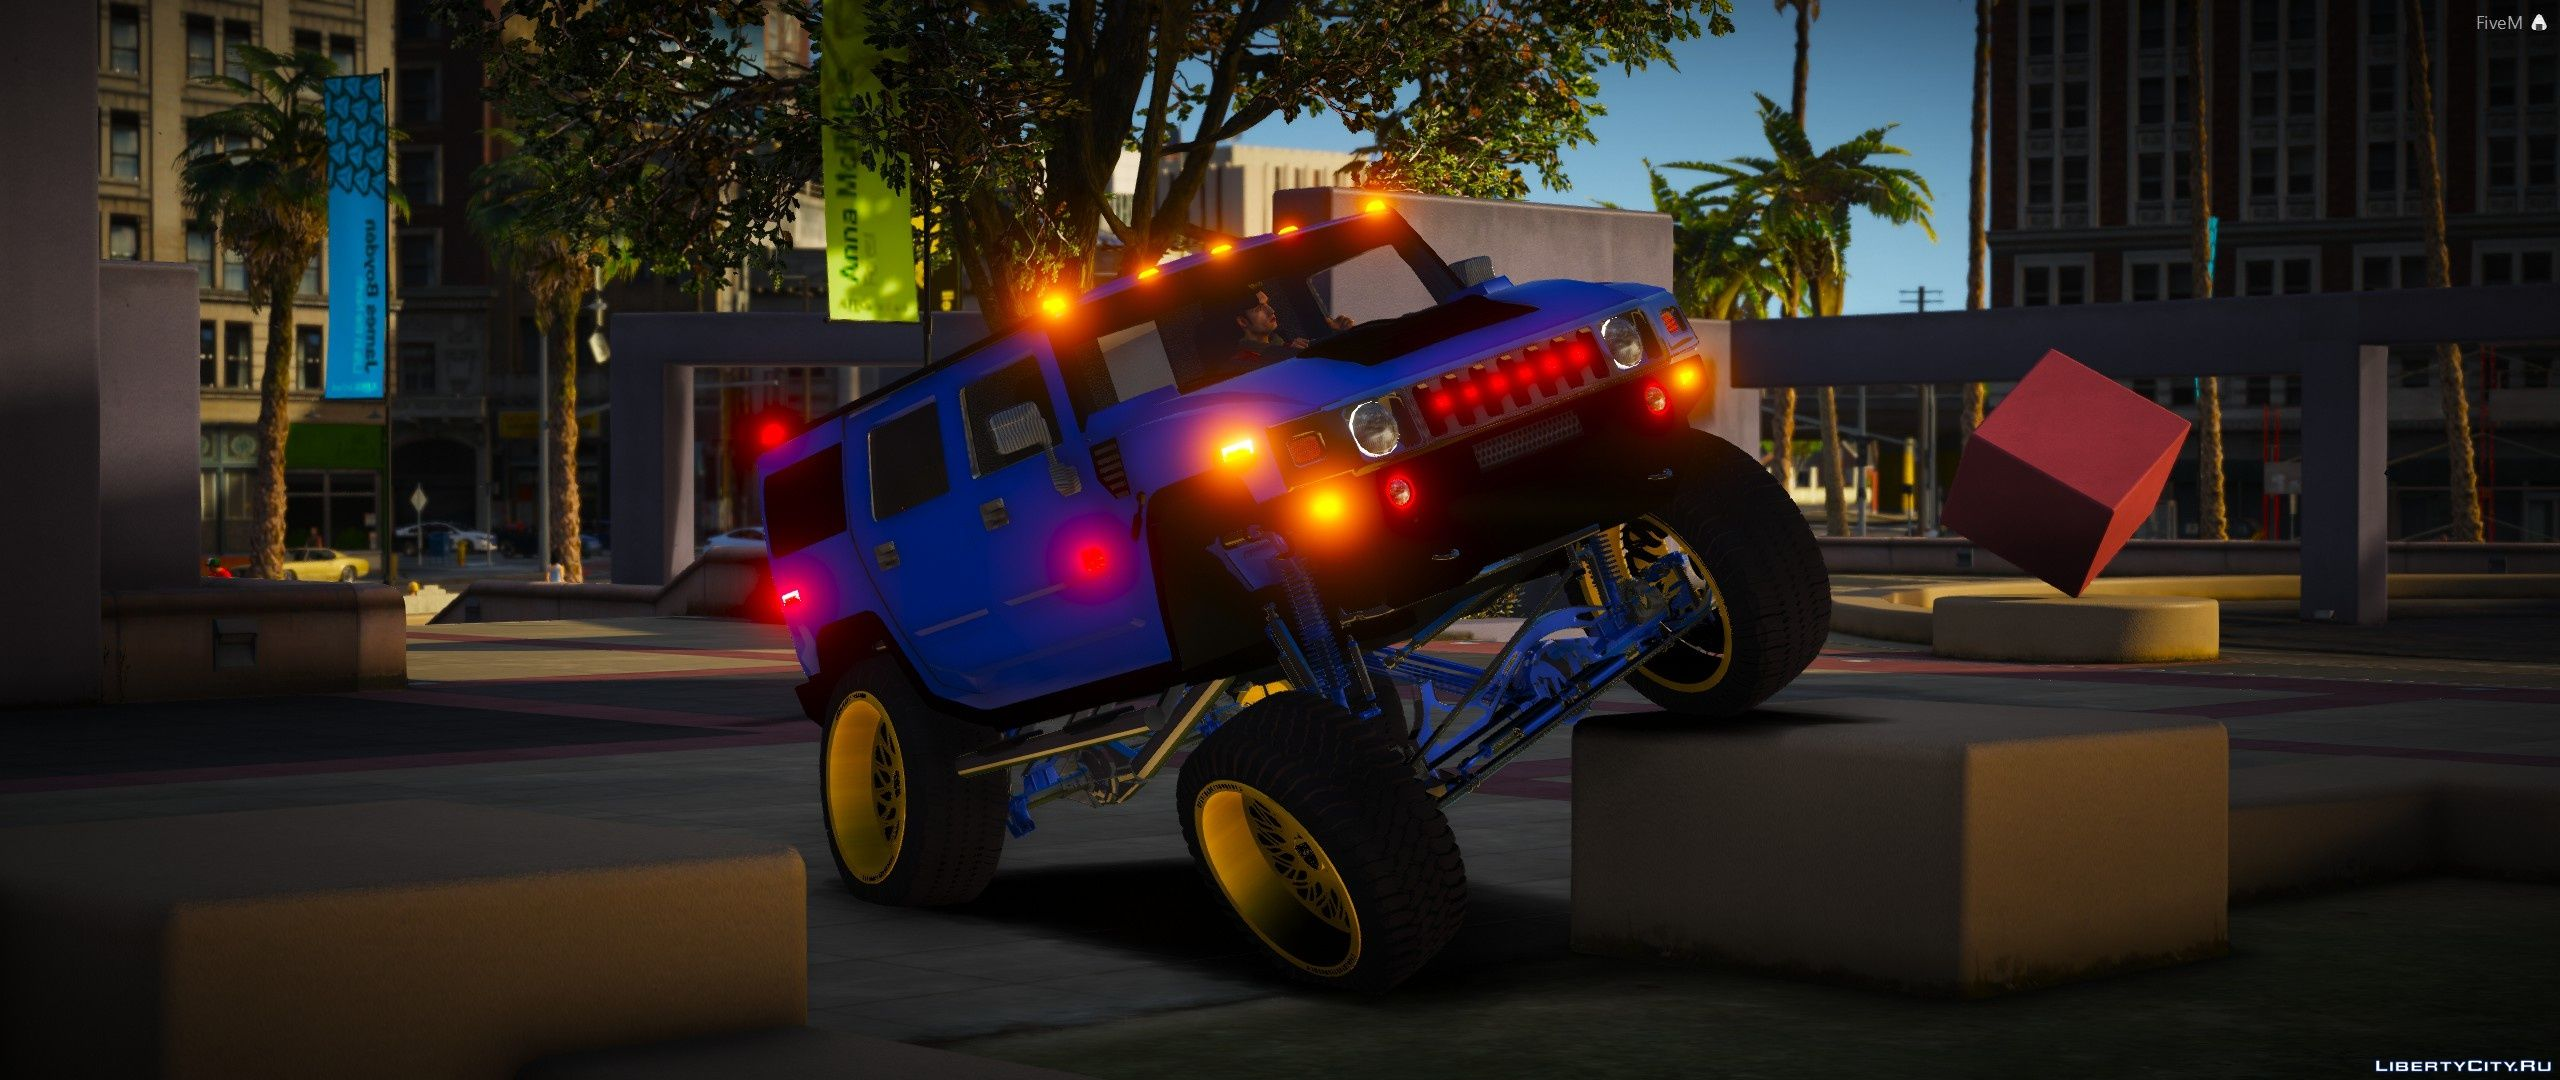 Hummer H2 [Add-On | FiveM] 1 0 for GTA 5